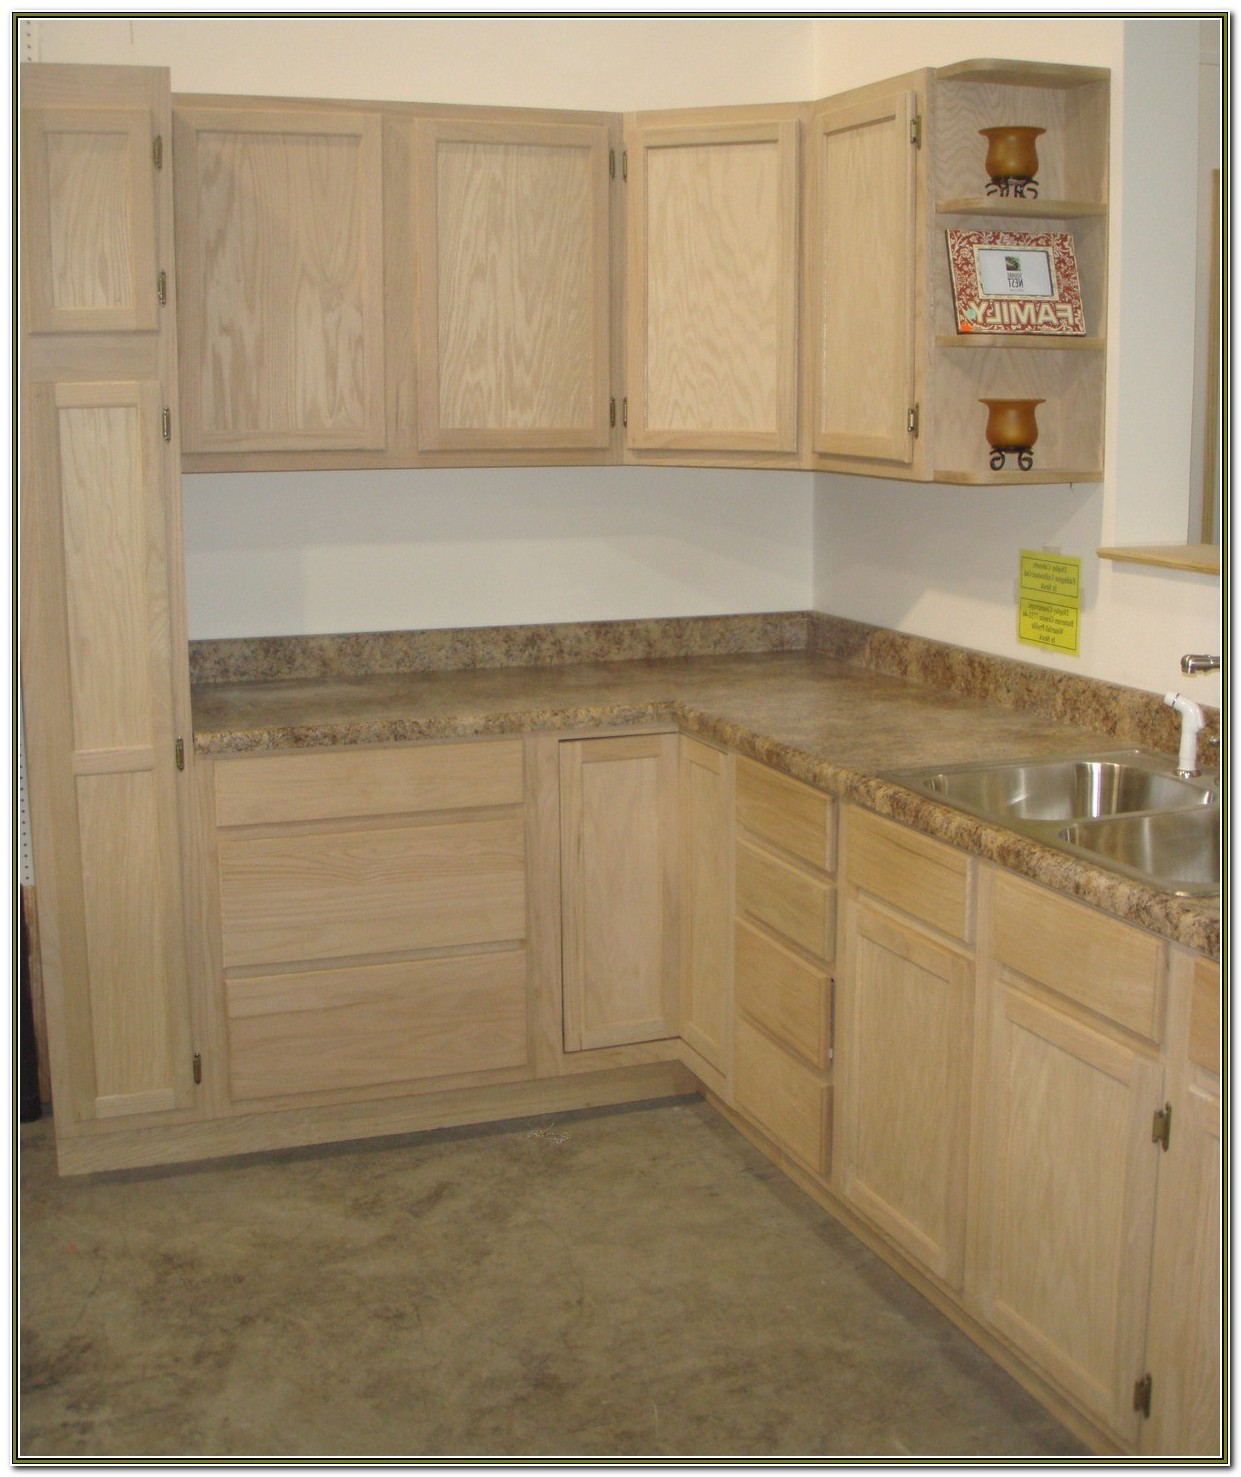 Home Depot Unfinished Kitchen Cabinets In Stock